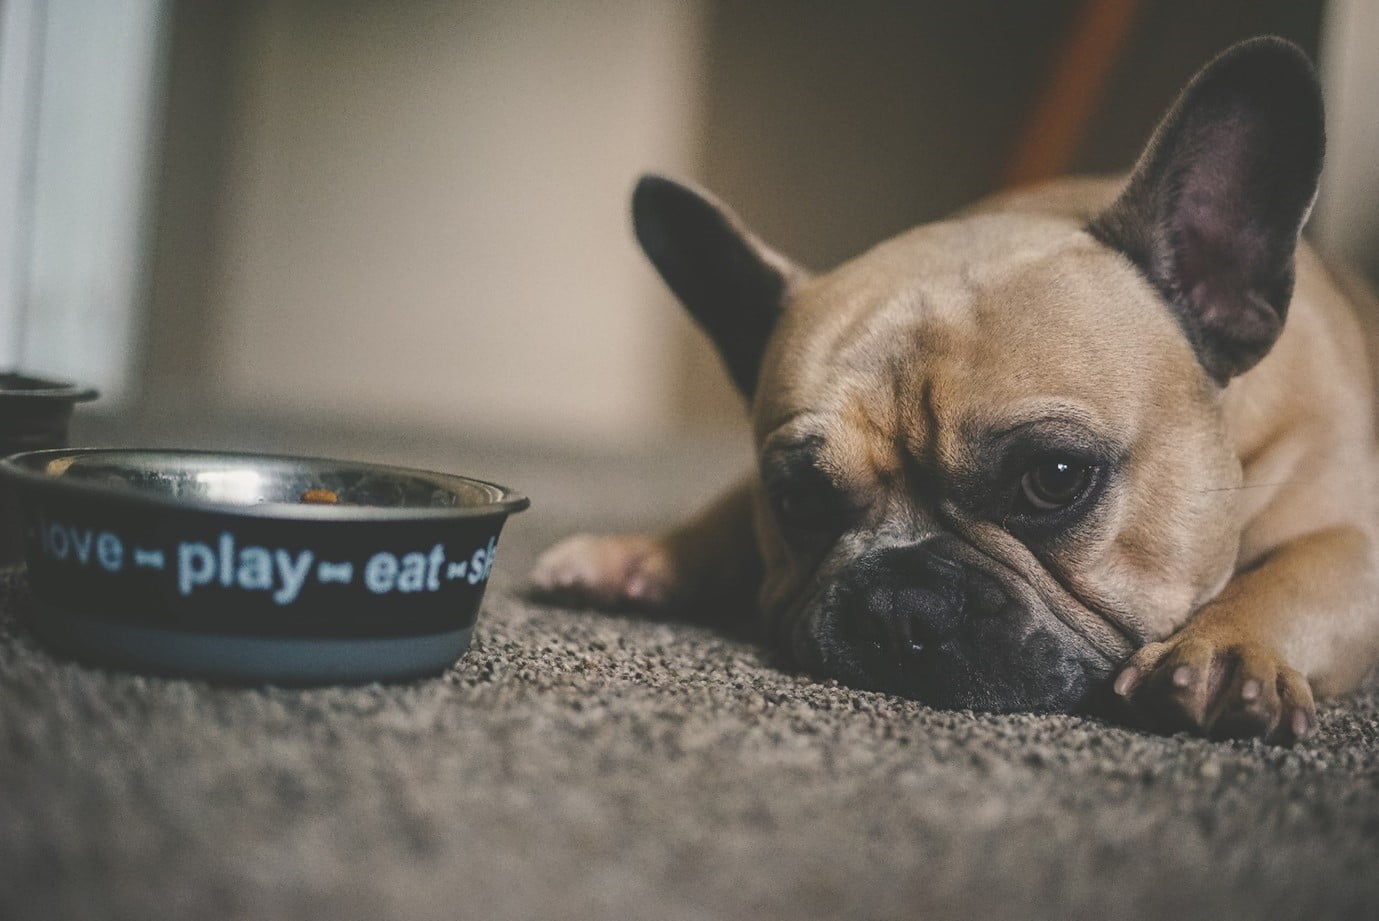 things that can poison your pet include common foods